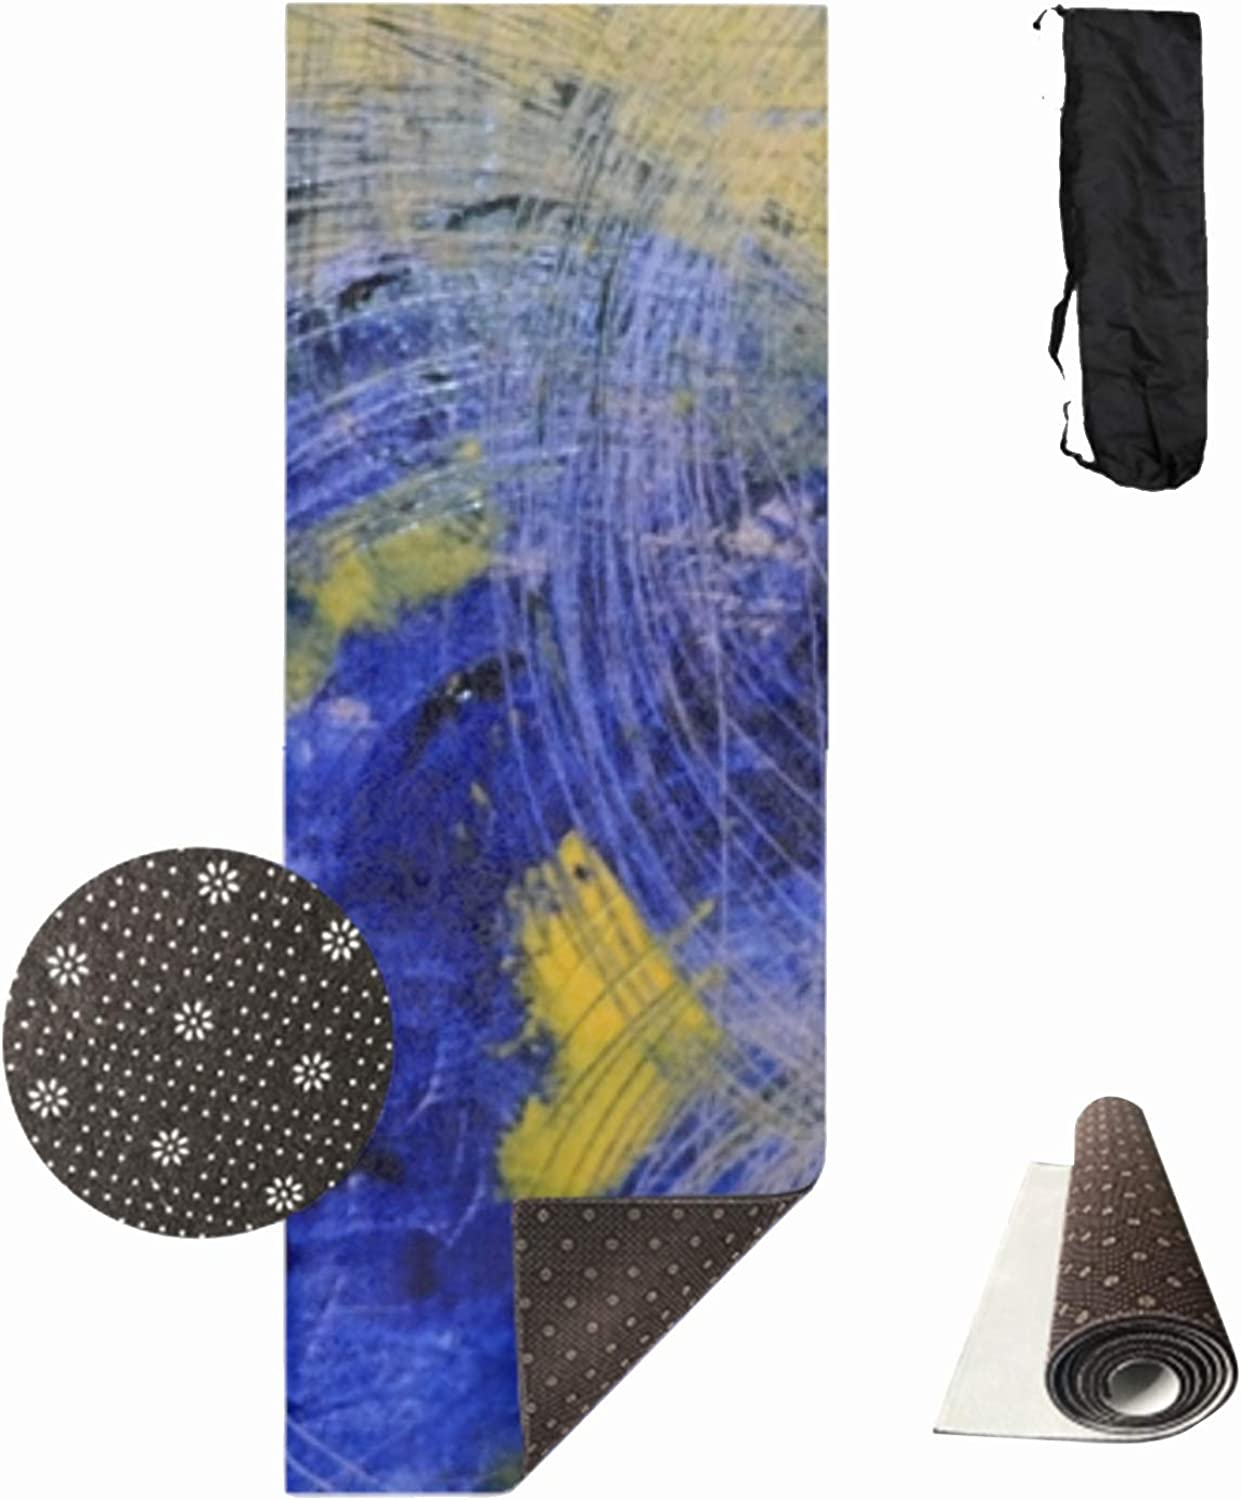 Qeeww Yoga Mat Flowers Fitness Mat Eco Friendly Material 70'' x 24'' NonSlip Extra Large Yoga Mat with Carry Bag